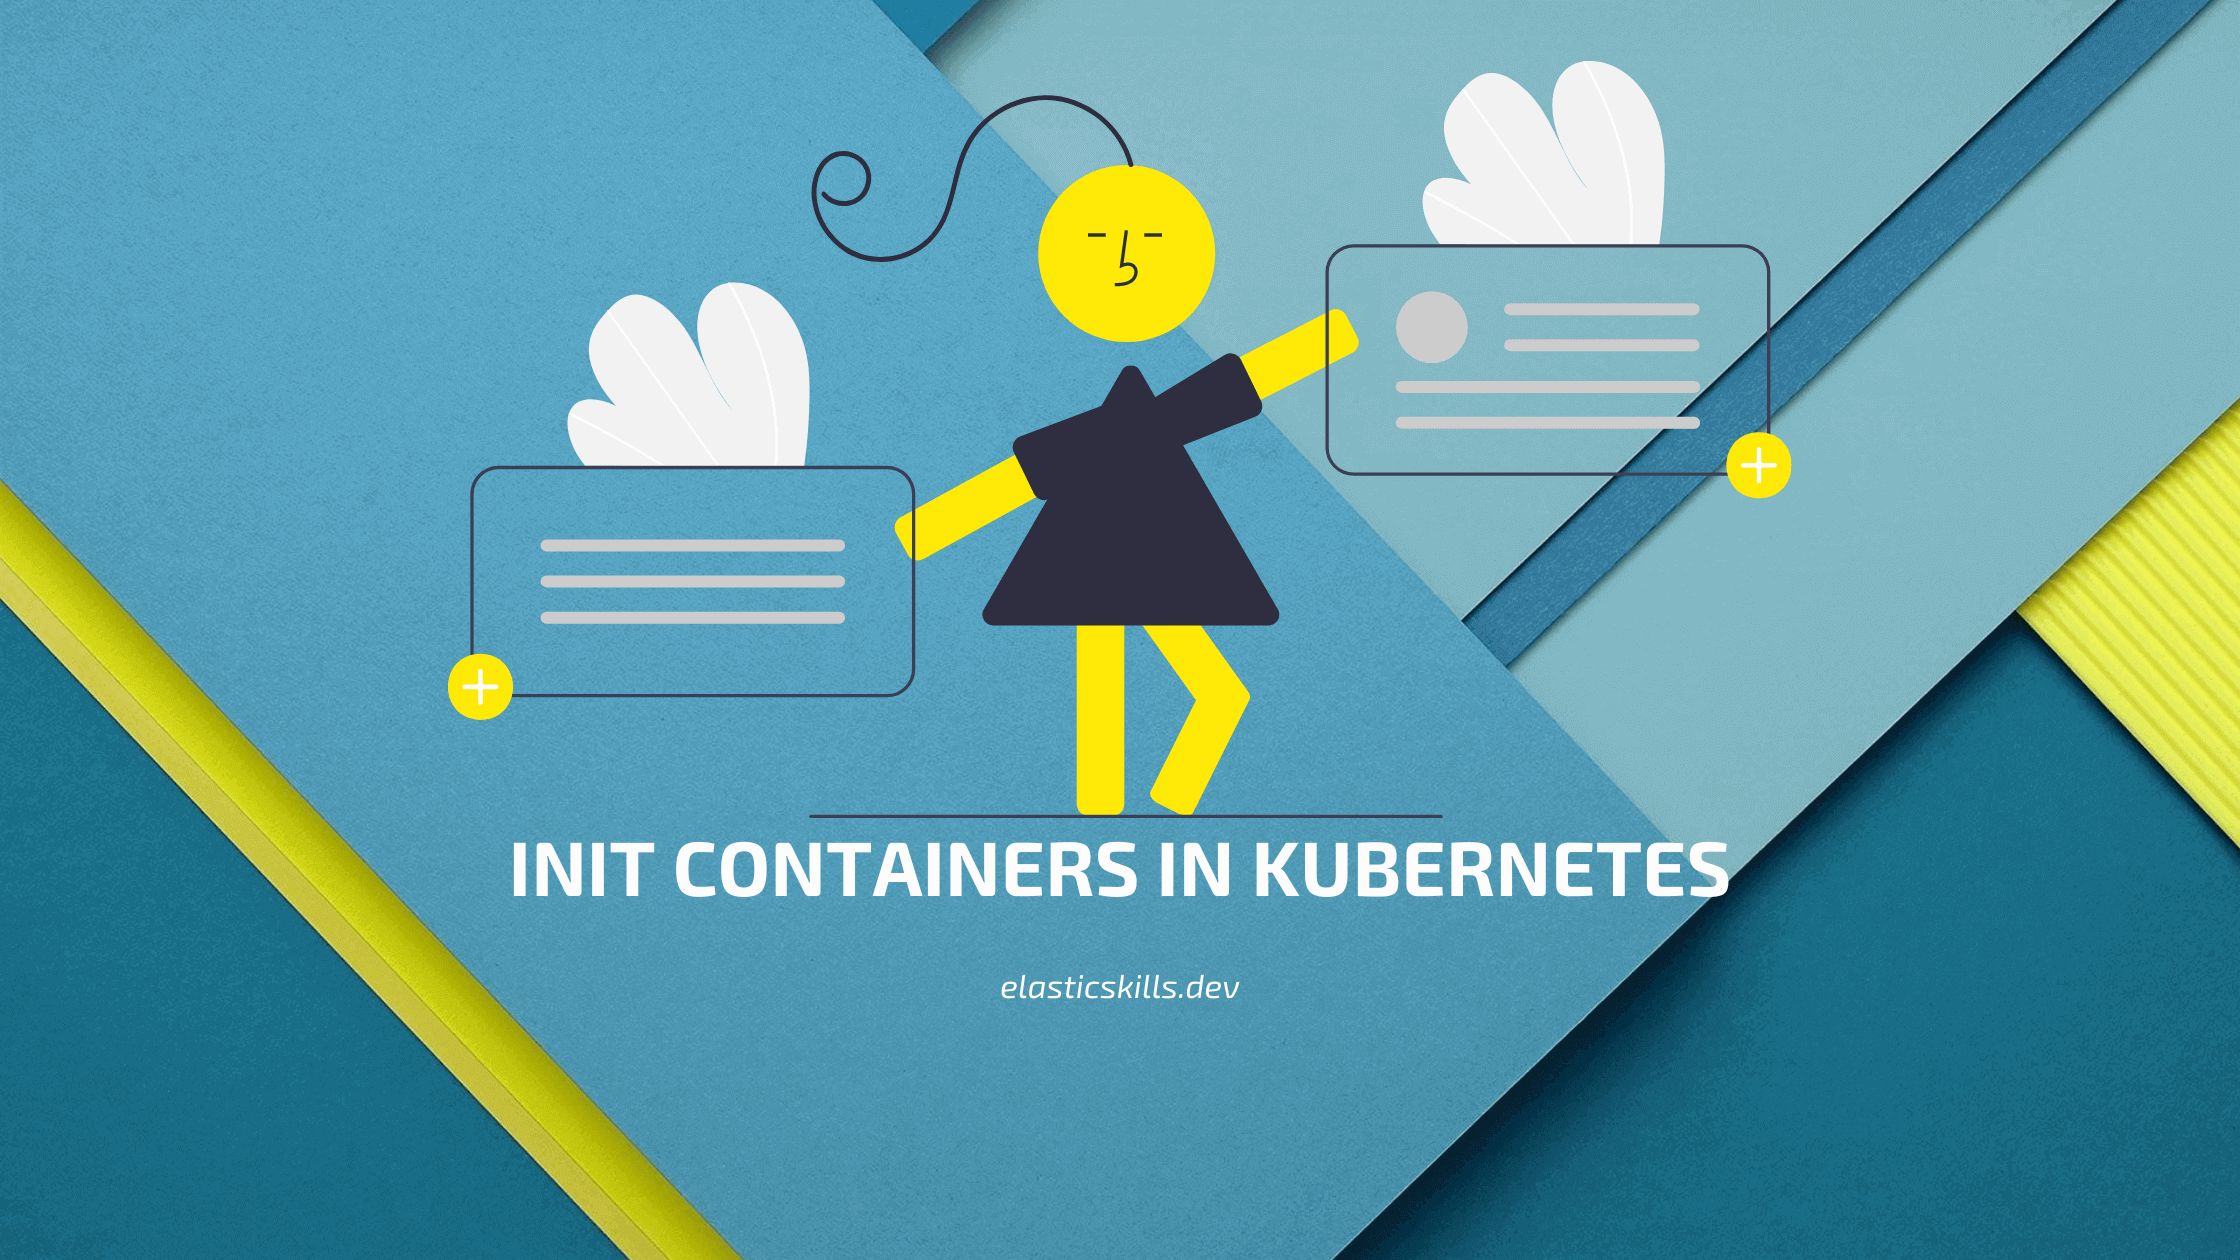 What Are Init Containers In Kubernetes & How To Use Them